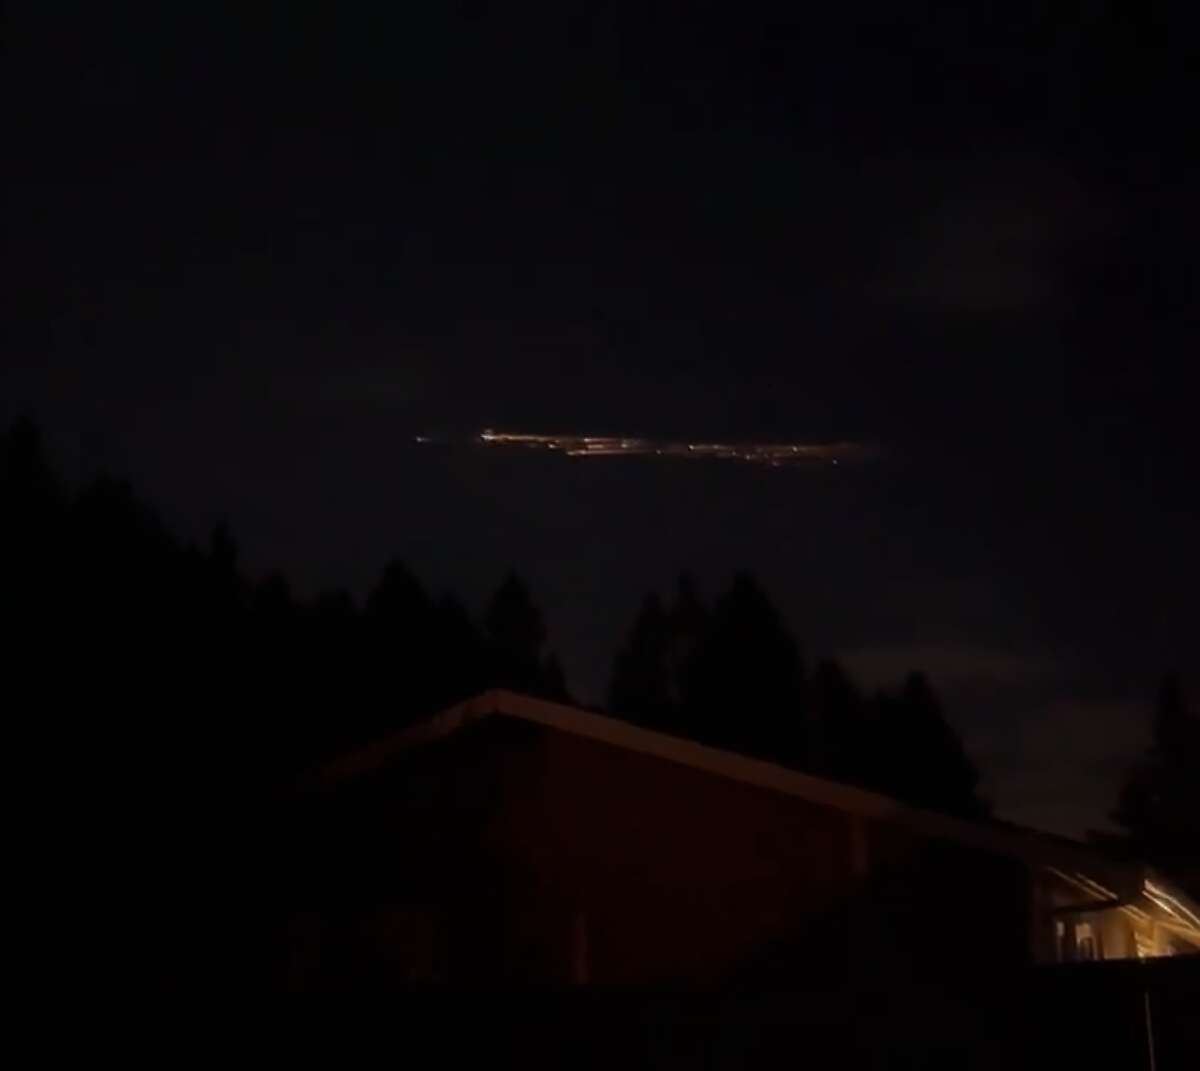 Washington residents report seeing mysterious lights in night sky